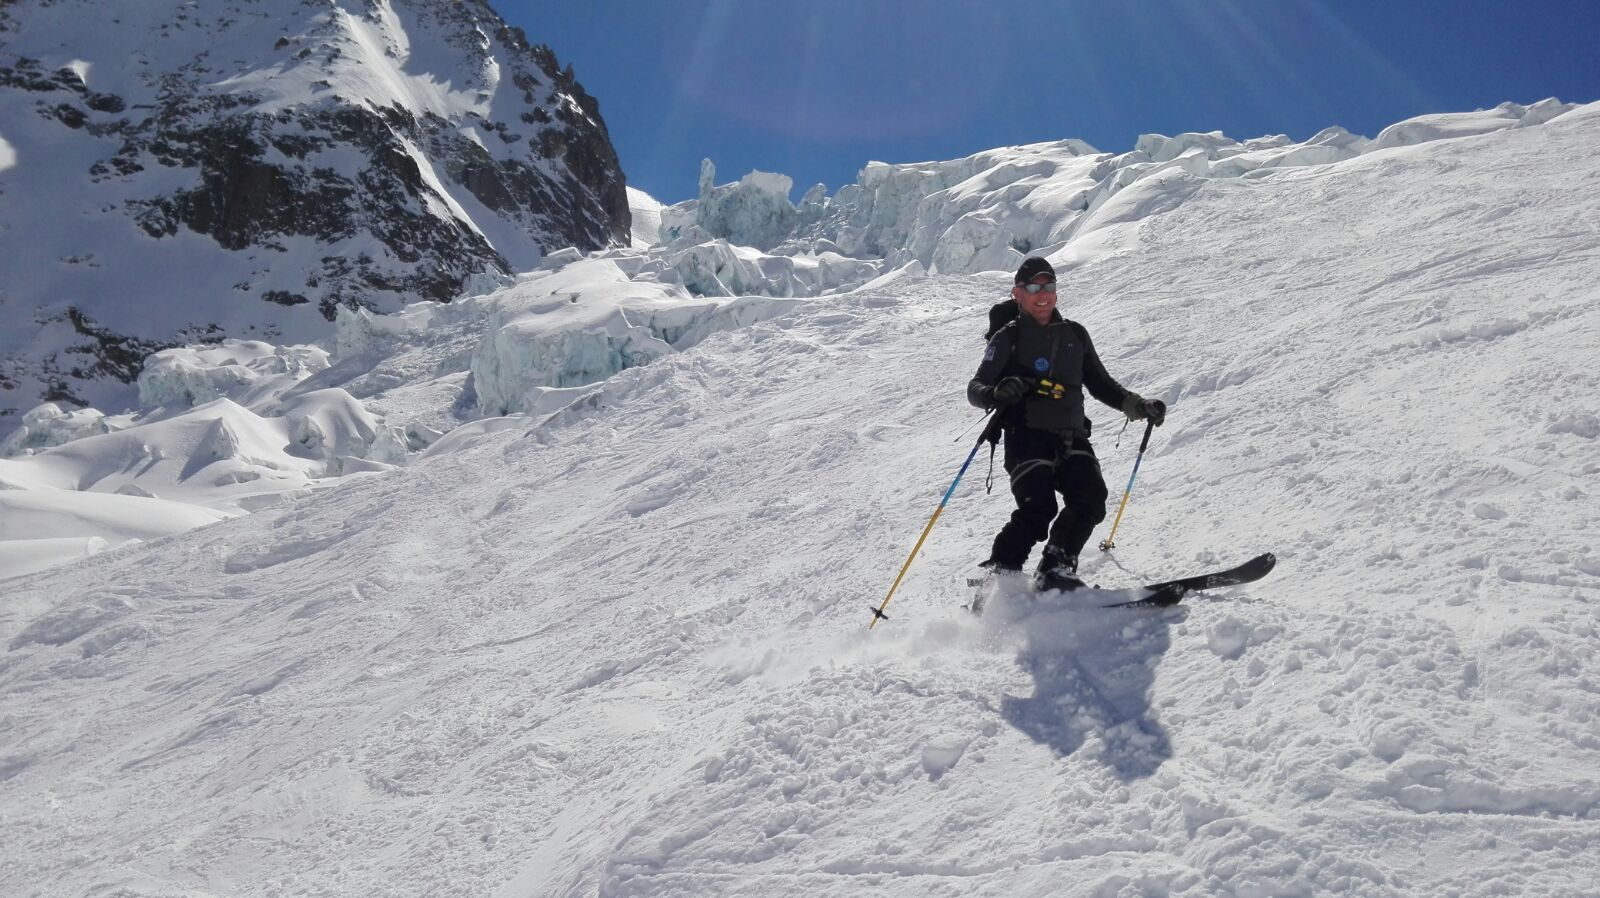 vallee blanche guide alpine proup (69)